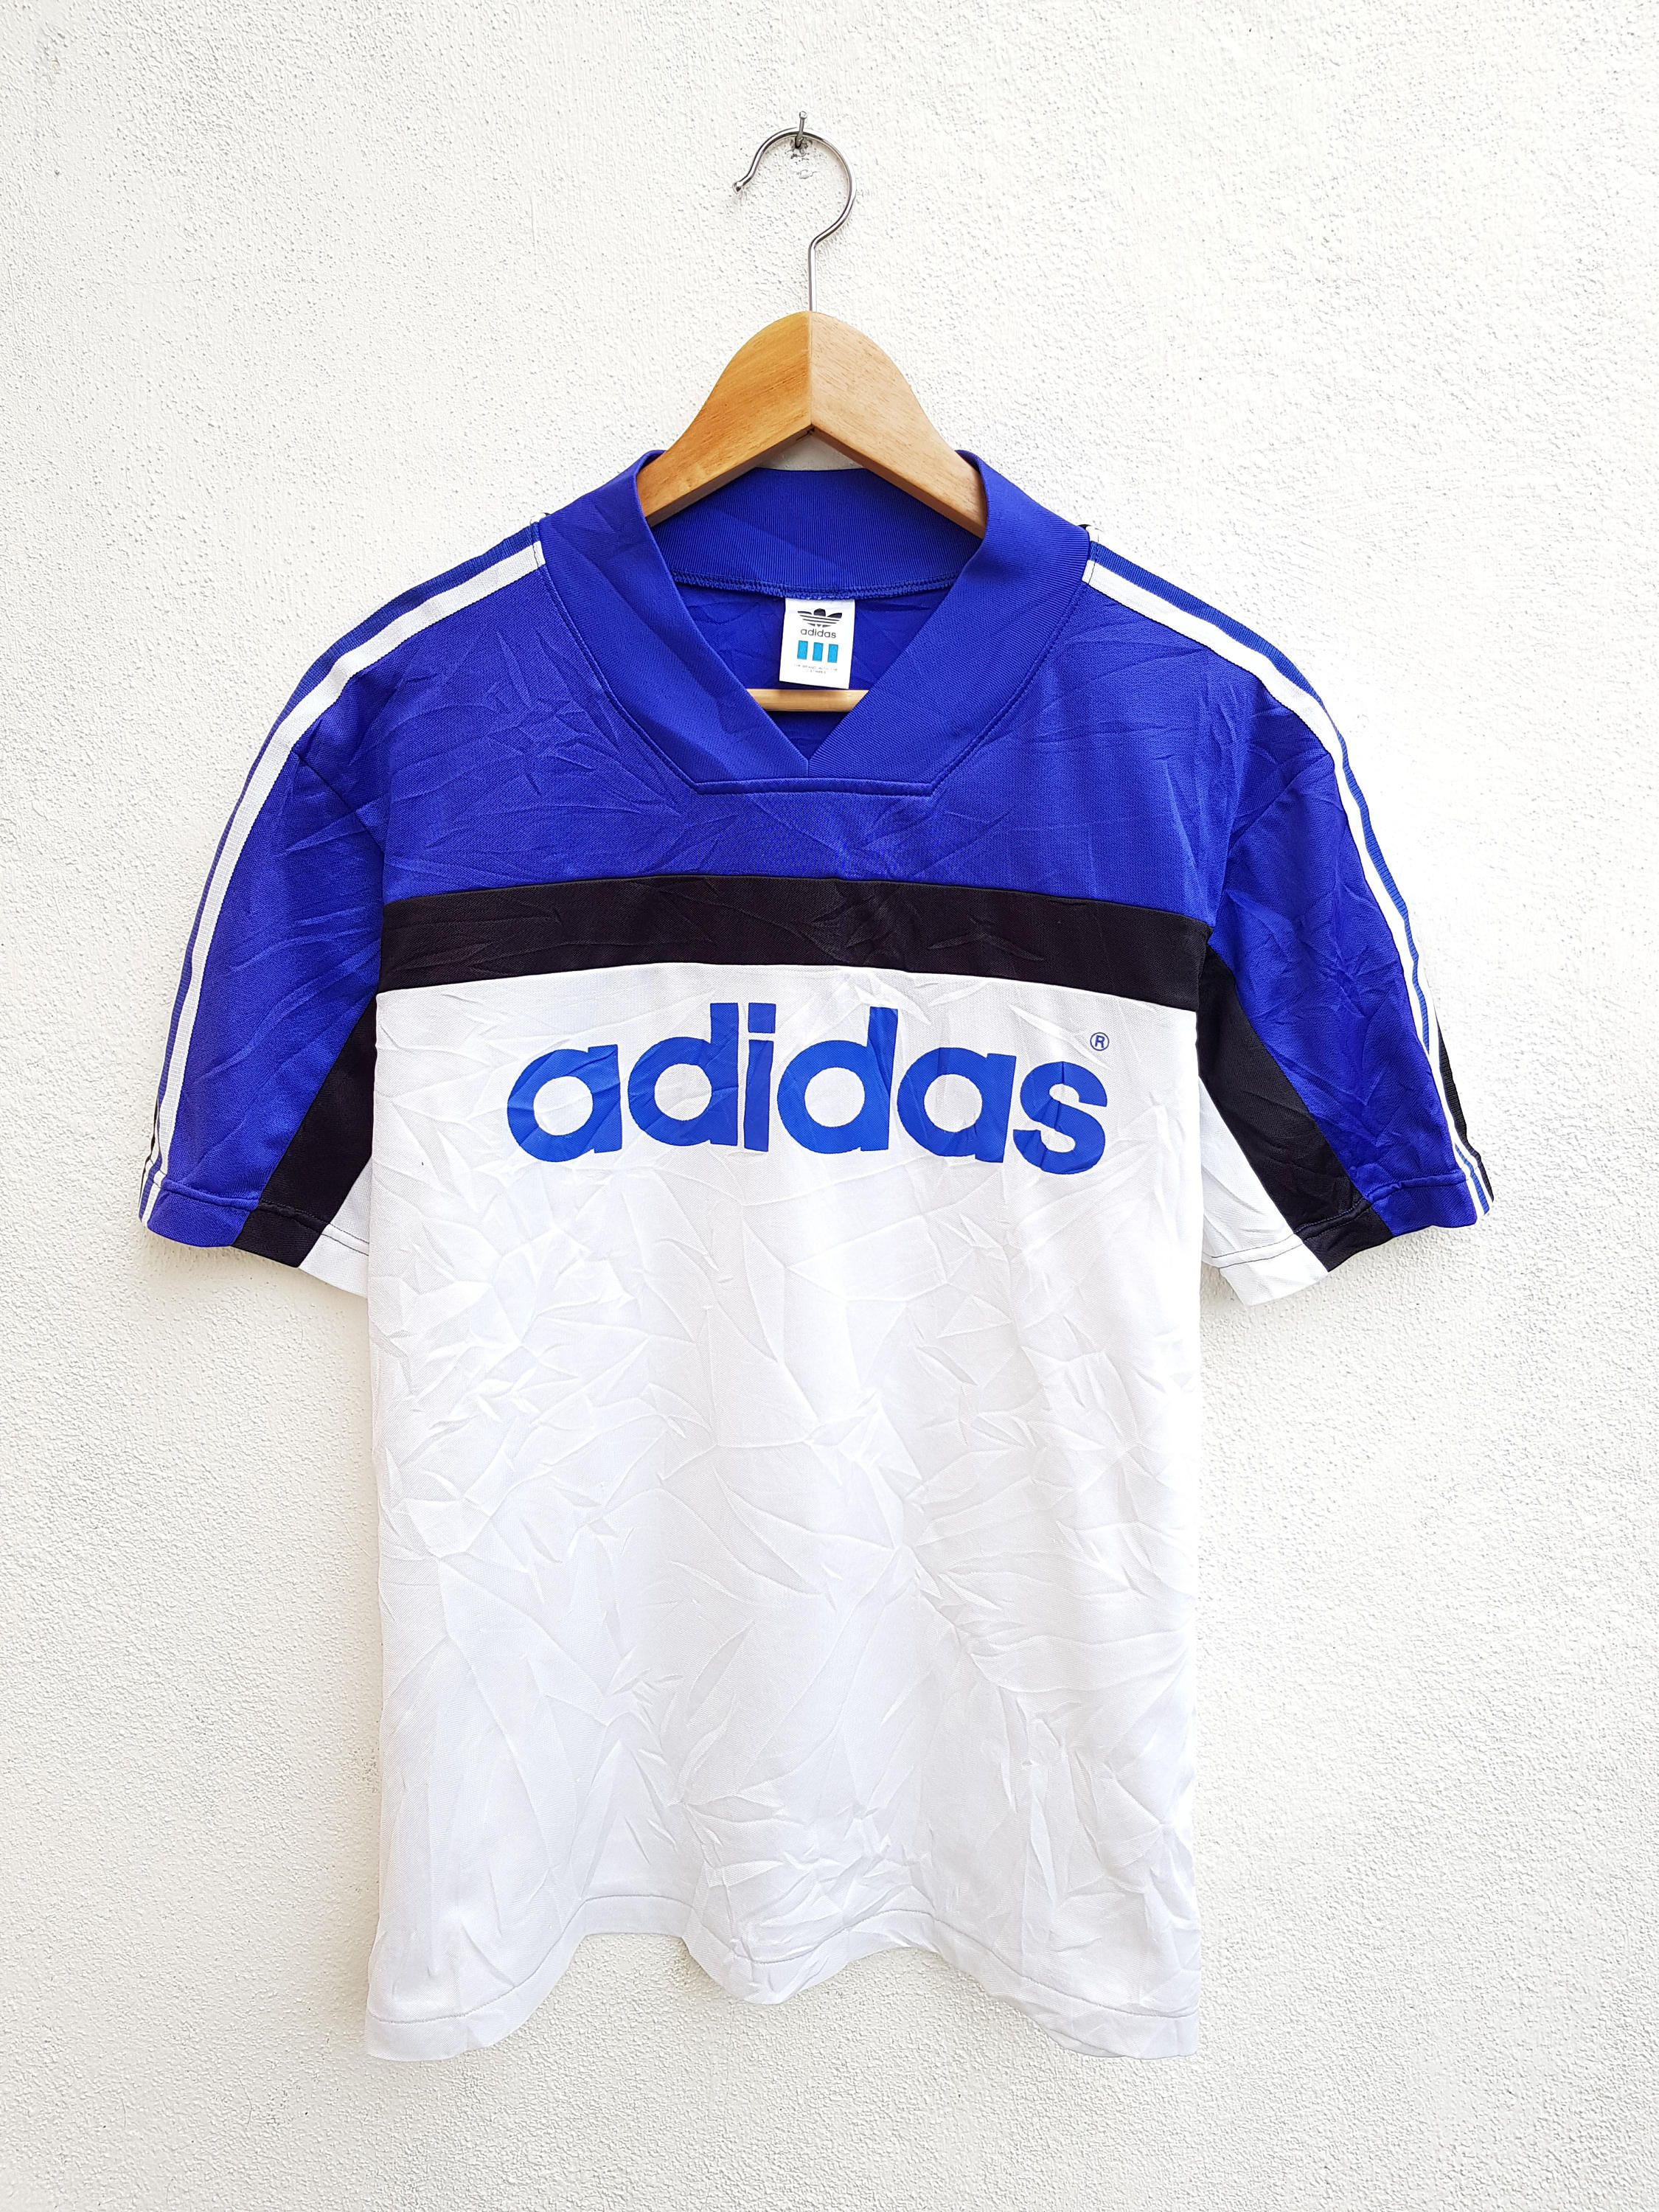 Vintage 90s Adidas Spell Out Color Block Soccer Style Sportswear 3 Stripes Jersey V Neck T Shirt Size O By Bubagumpb Striped Jersey Trending Outfits Sportswear [ 3000 x 2250 Pixel ]